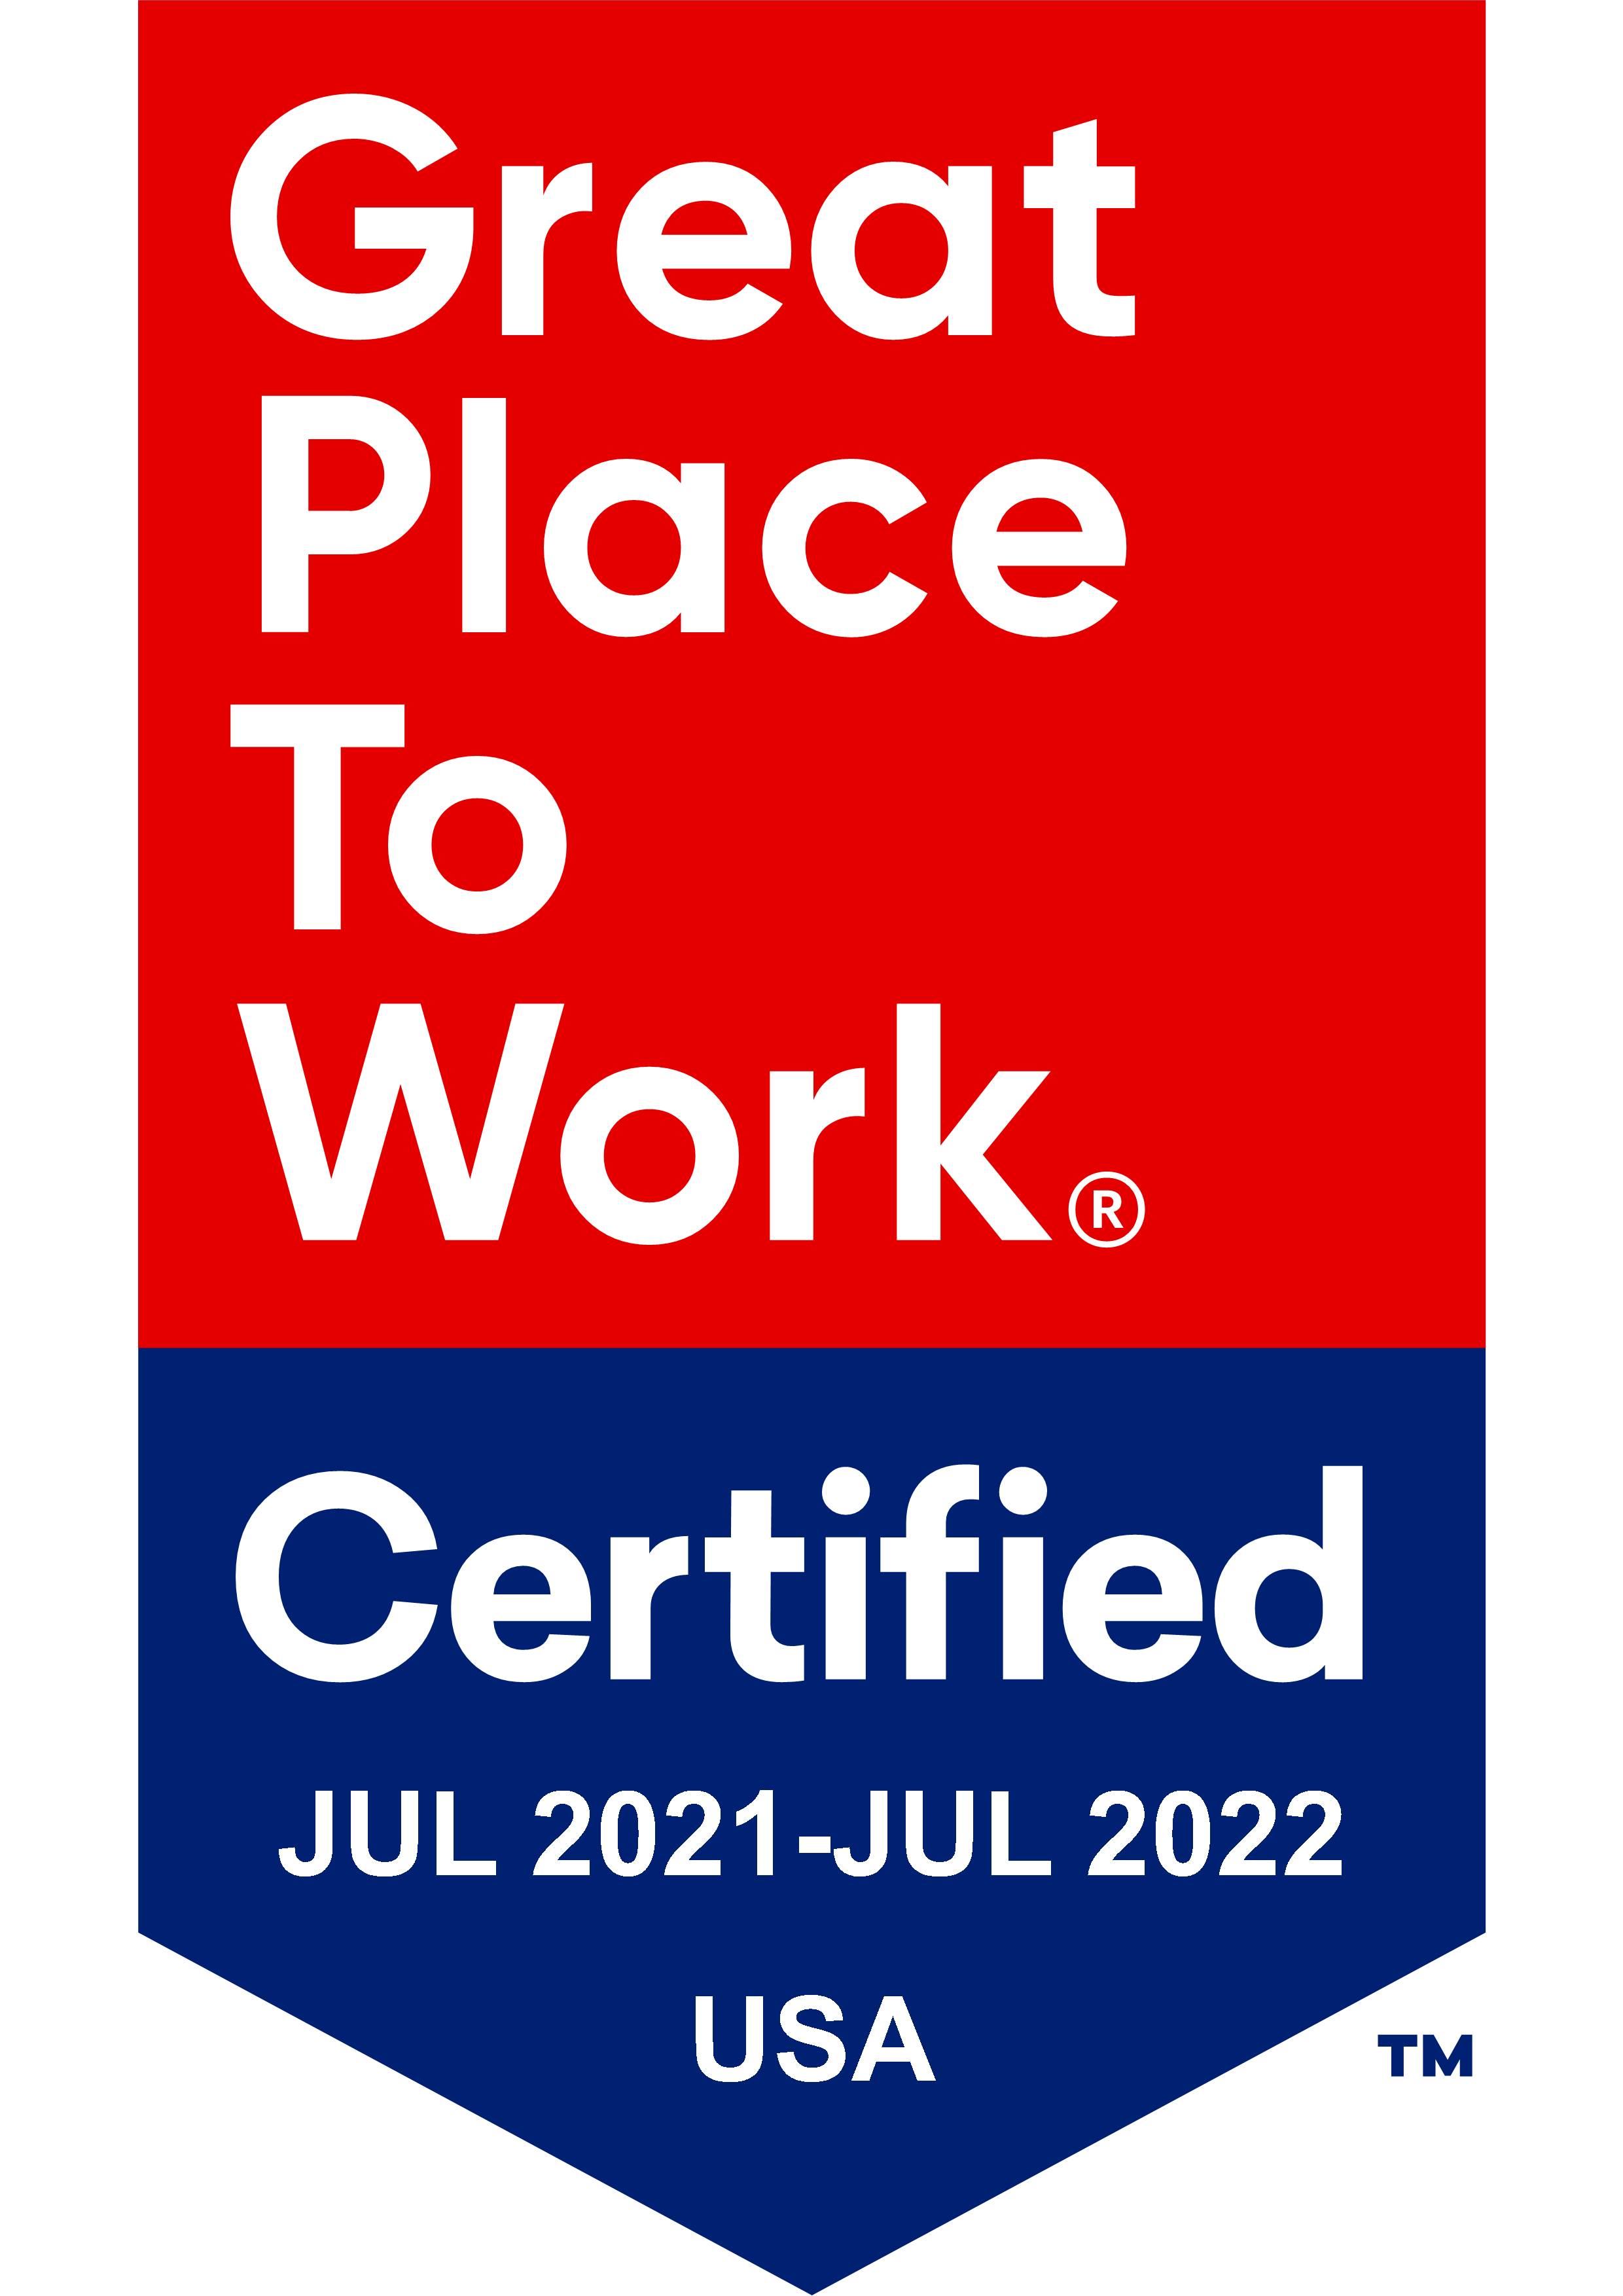 Great Places to Work Certified